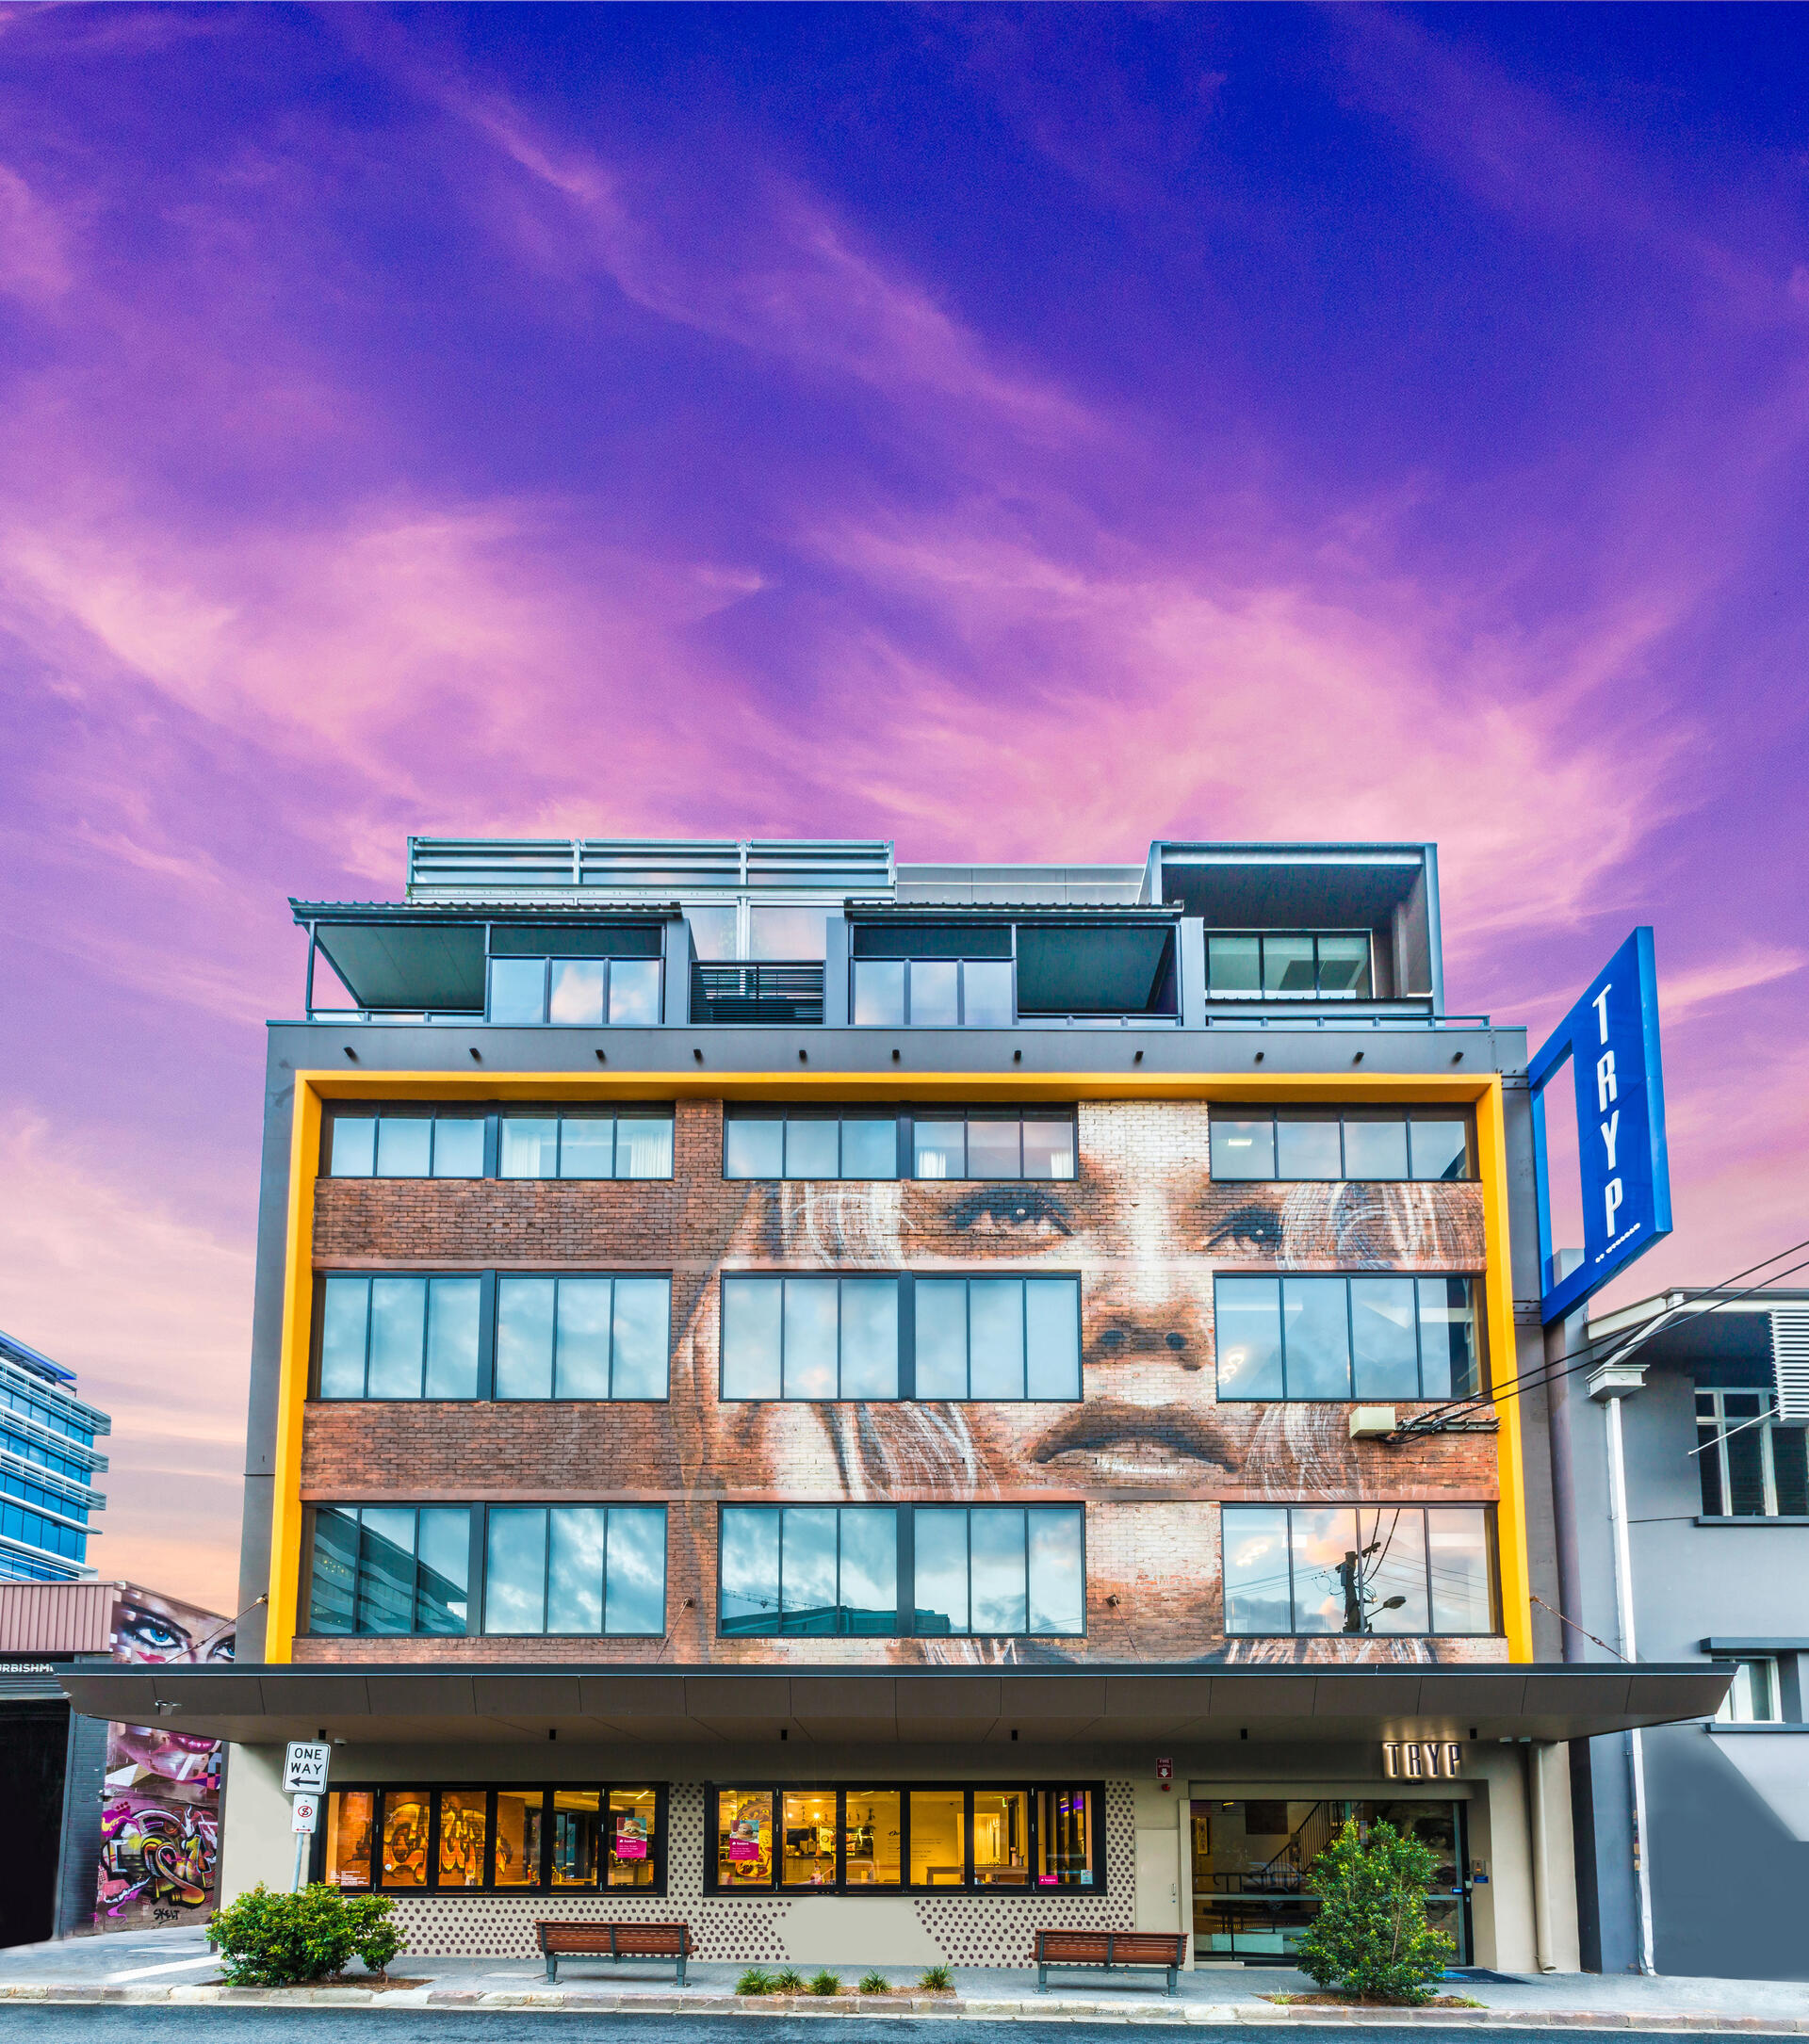 Boutique hotel in Brisbane CBD with epic street art: themed arti